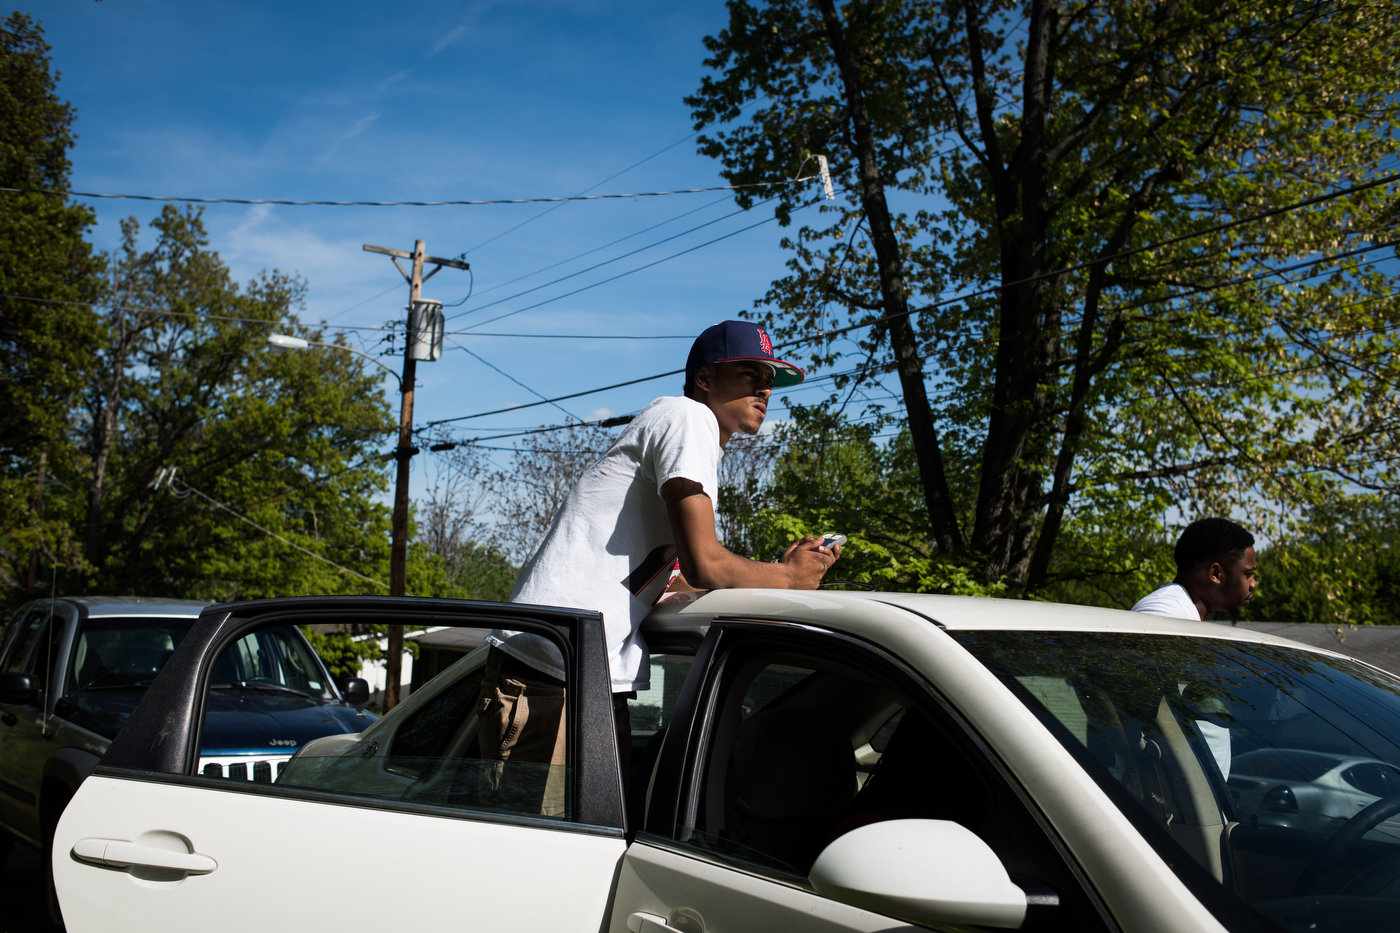 TJ Banks surveys the street while hanging out with friends in the Bermuda neighborhood of Ferguson, Mo. Banks stopped attending college because of high costs but was hoping to save up money to return to school.